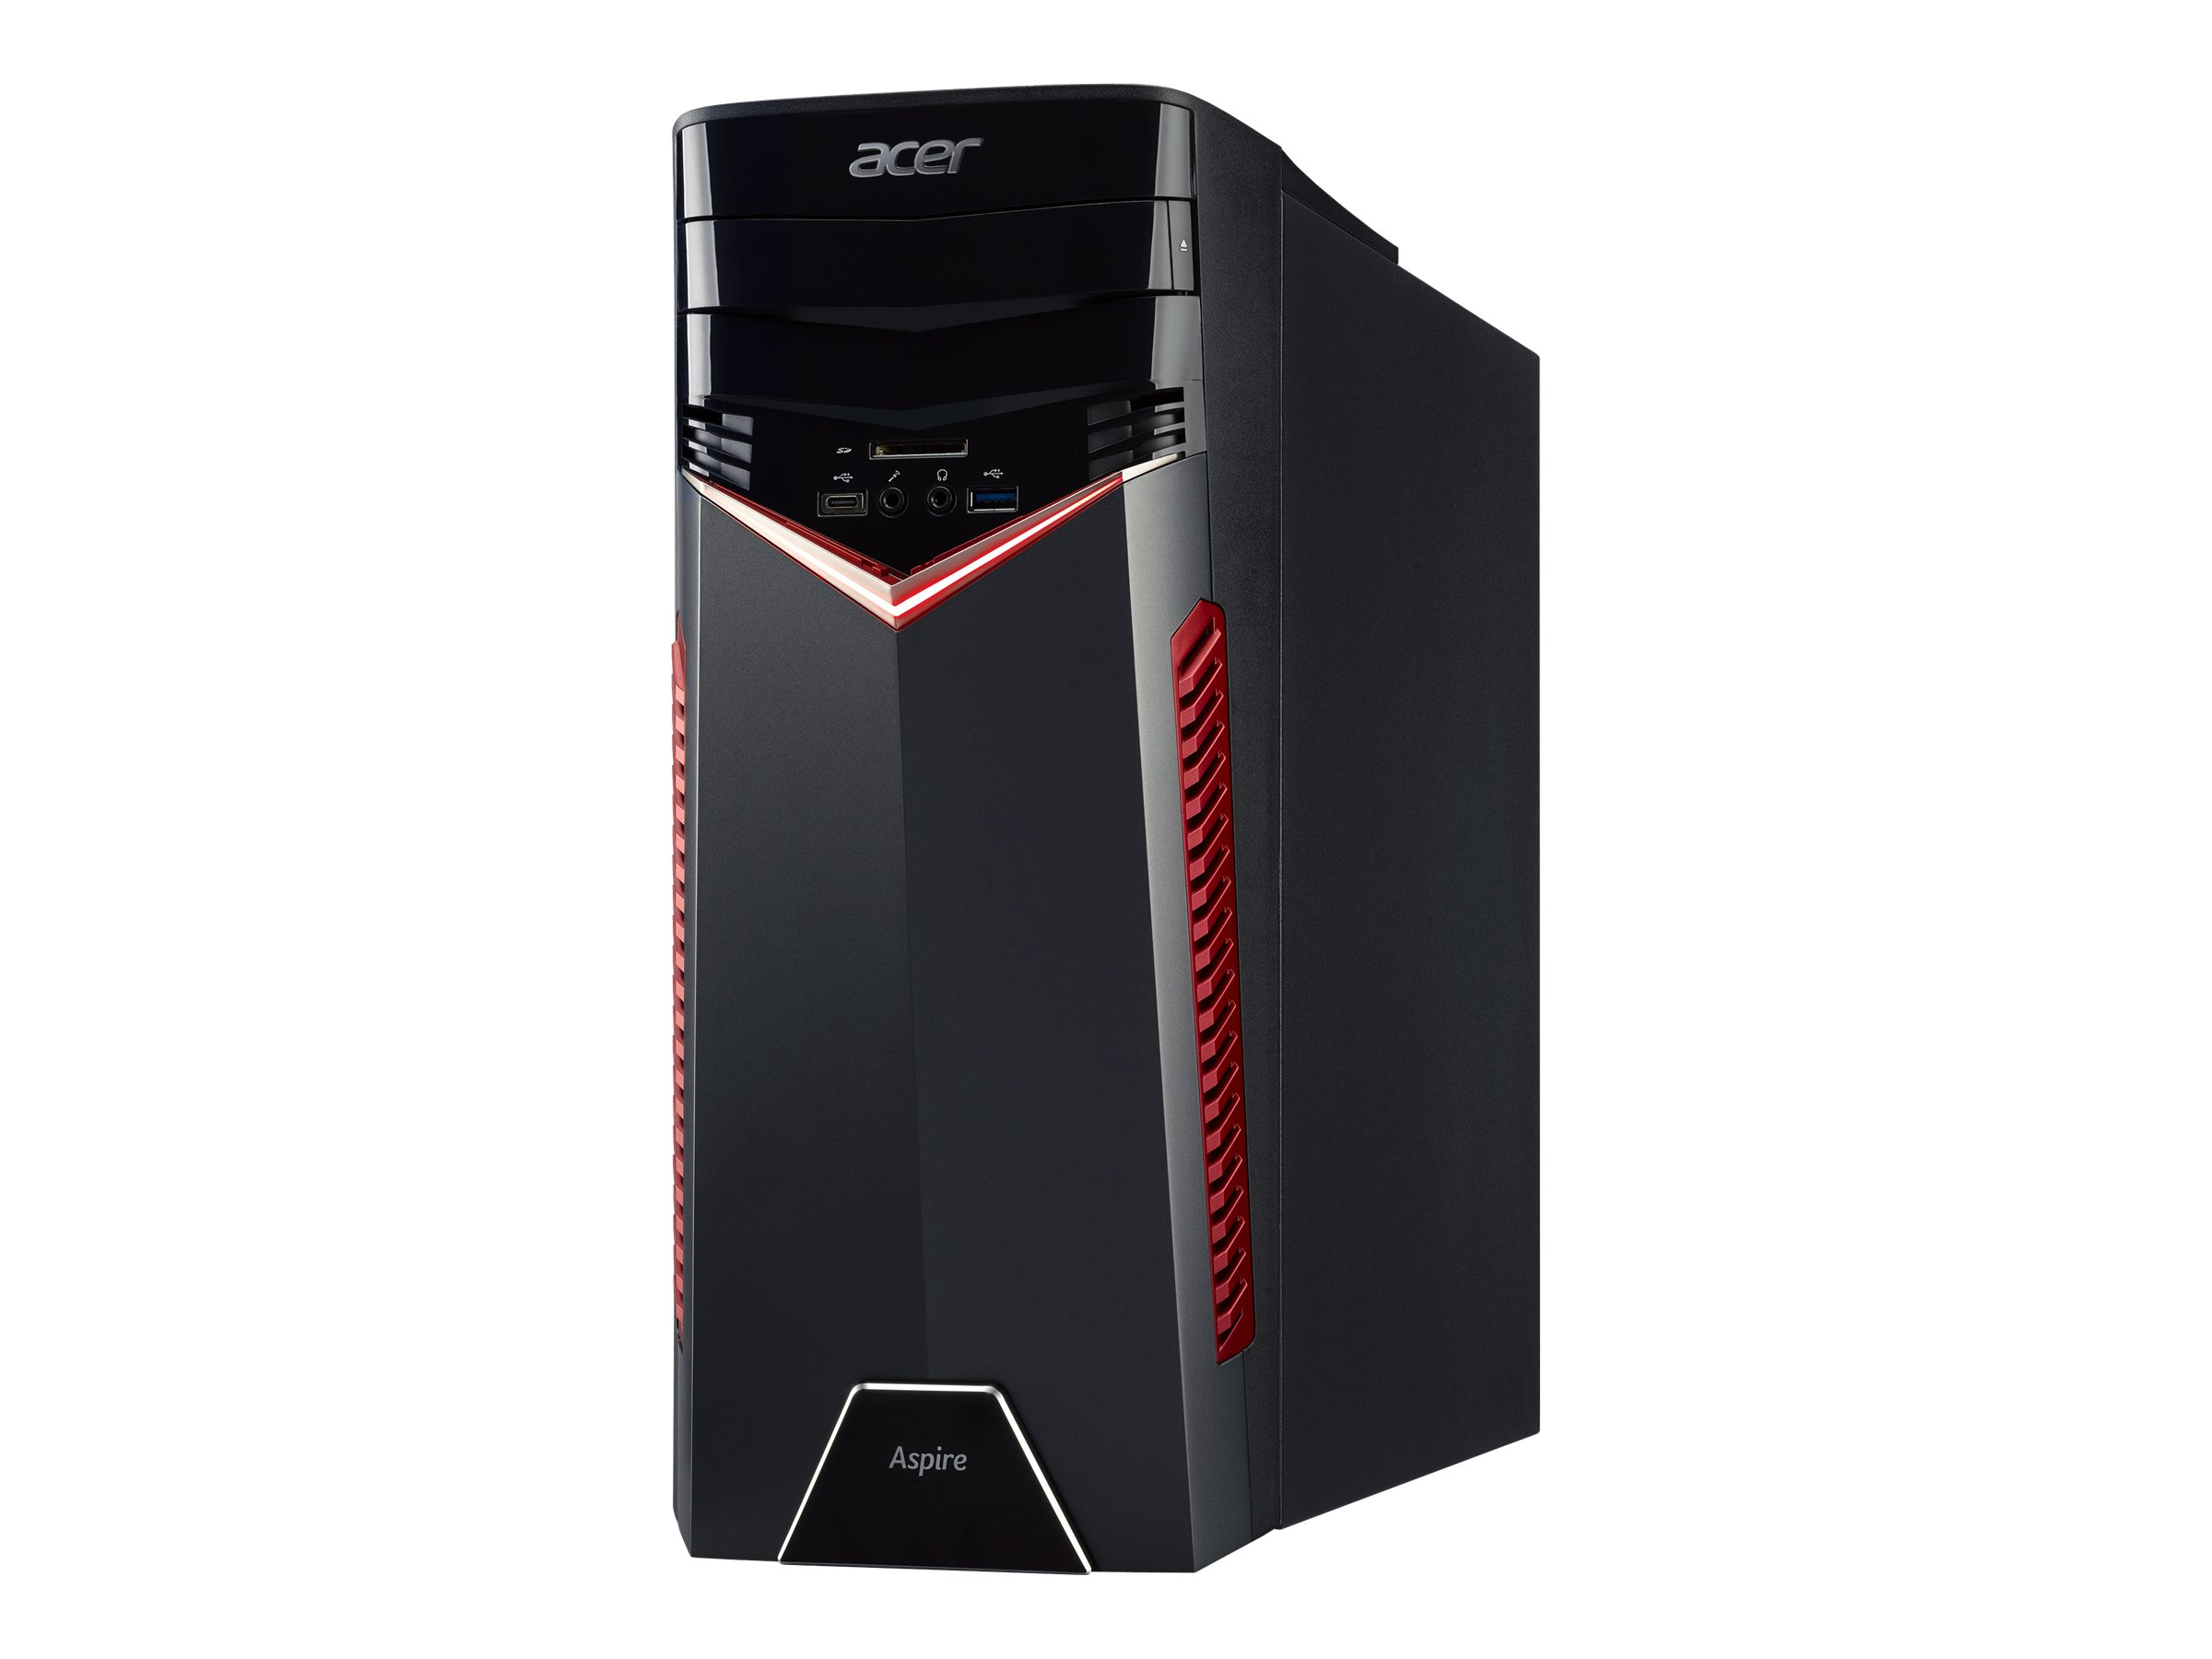 Acer Aspire GX-281_W - tower - Ryzen 5 1600 3.2 GHz - 8 GB - HDD 1 TB